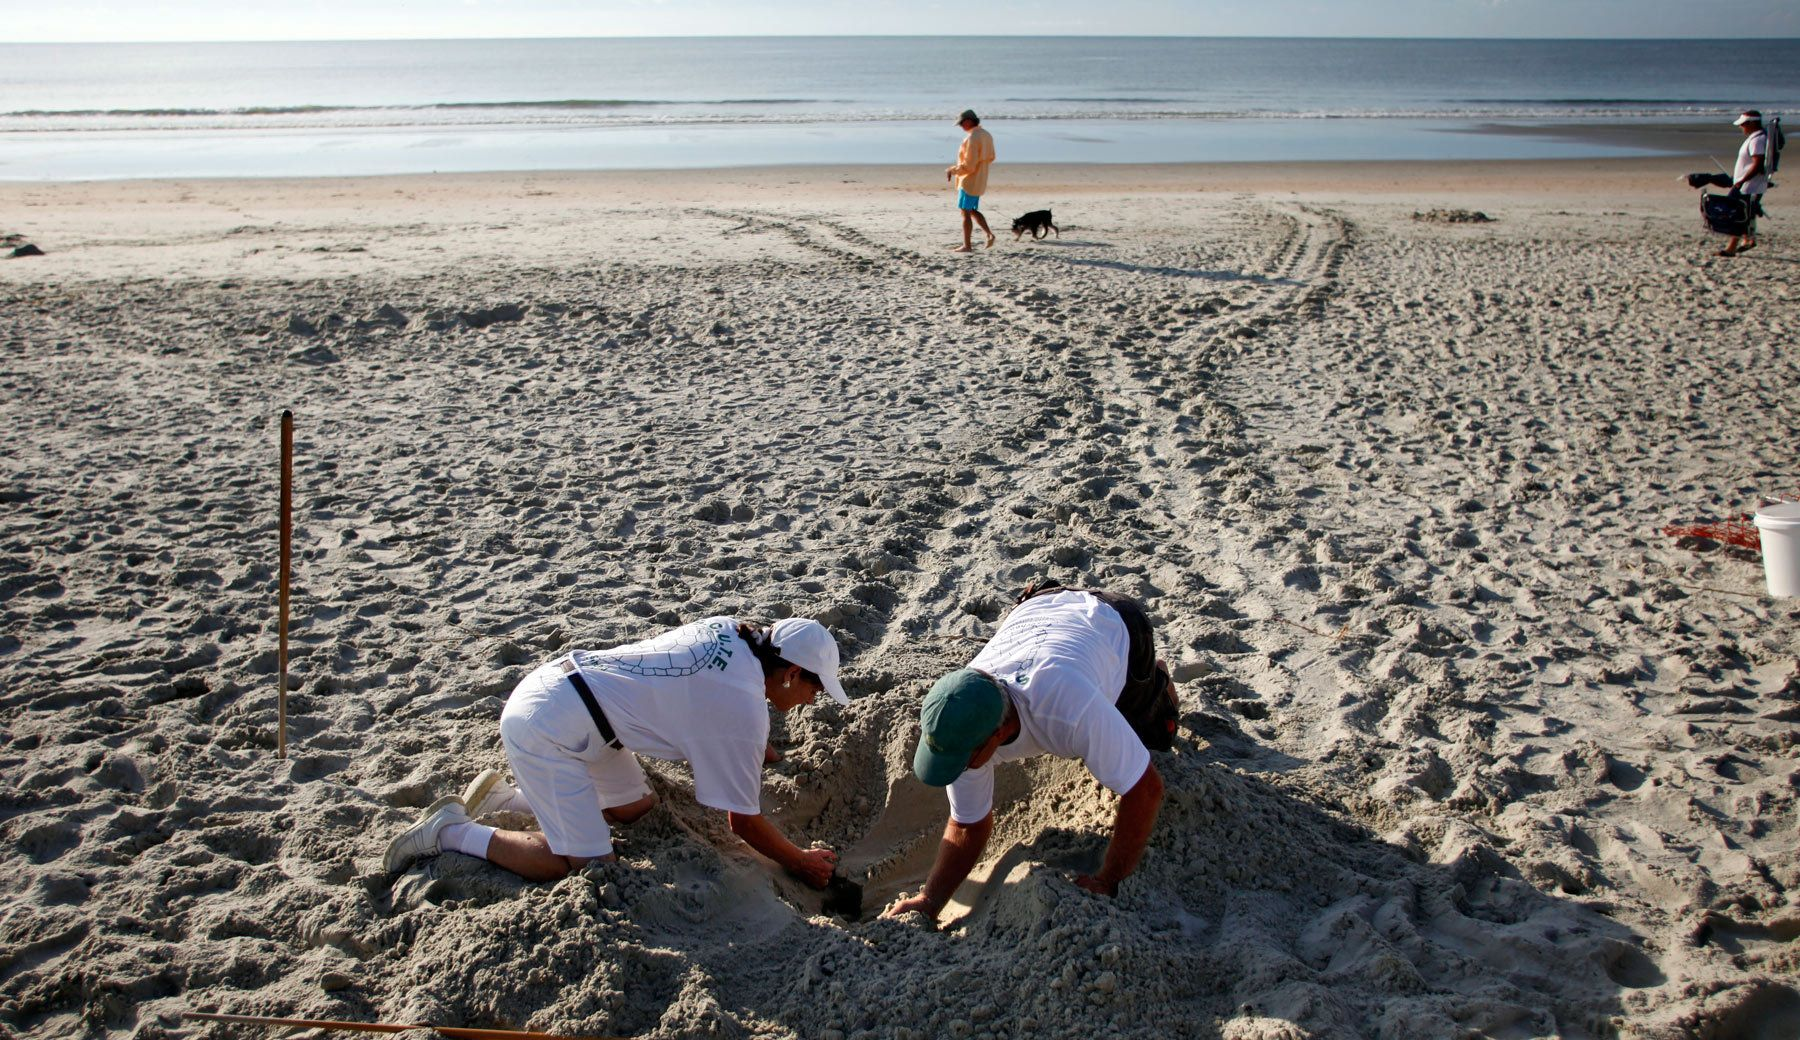 With turtle tracks in the background, volunteer Goffinet McLaren (L) and South Carolina United Turtle Enthusiasts head coordinator, Jeff McClary, check over the location of a freshly laid nest on Litchfield Beach along the coast of South Carolina August 9, 2012.REUTERS/Randall Hill